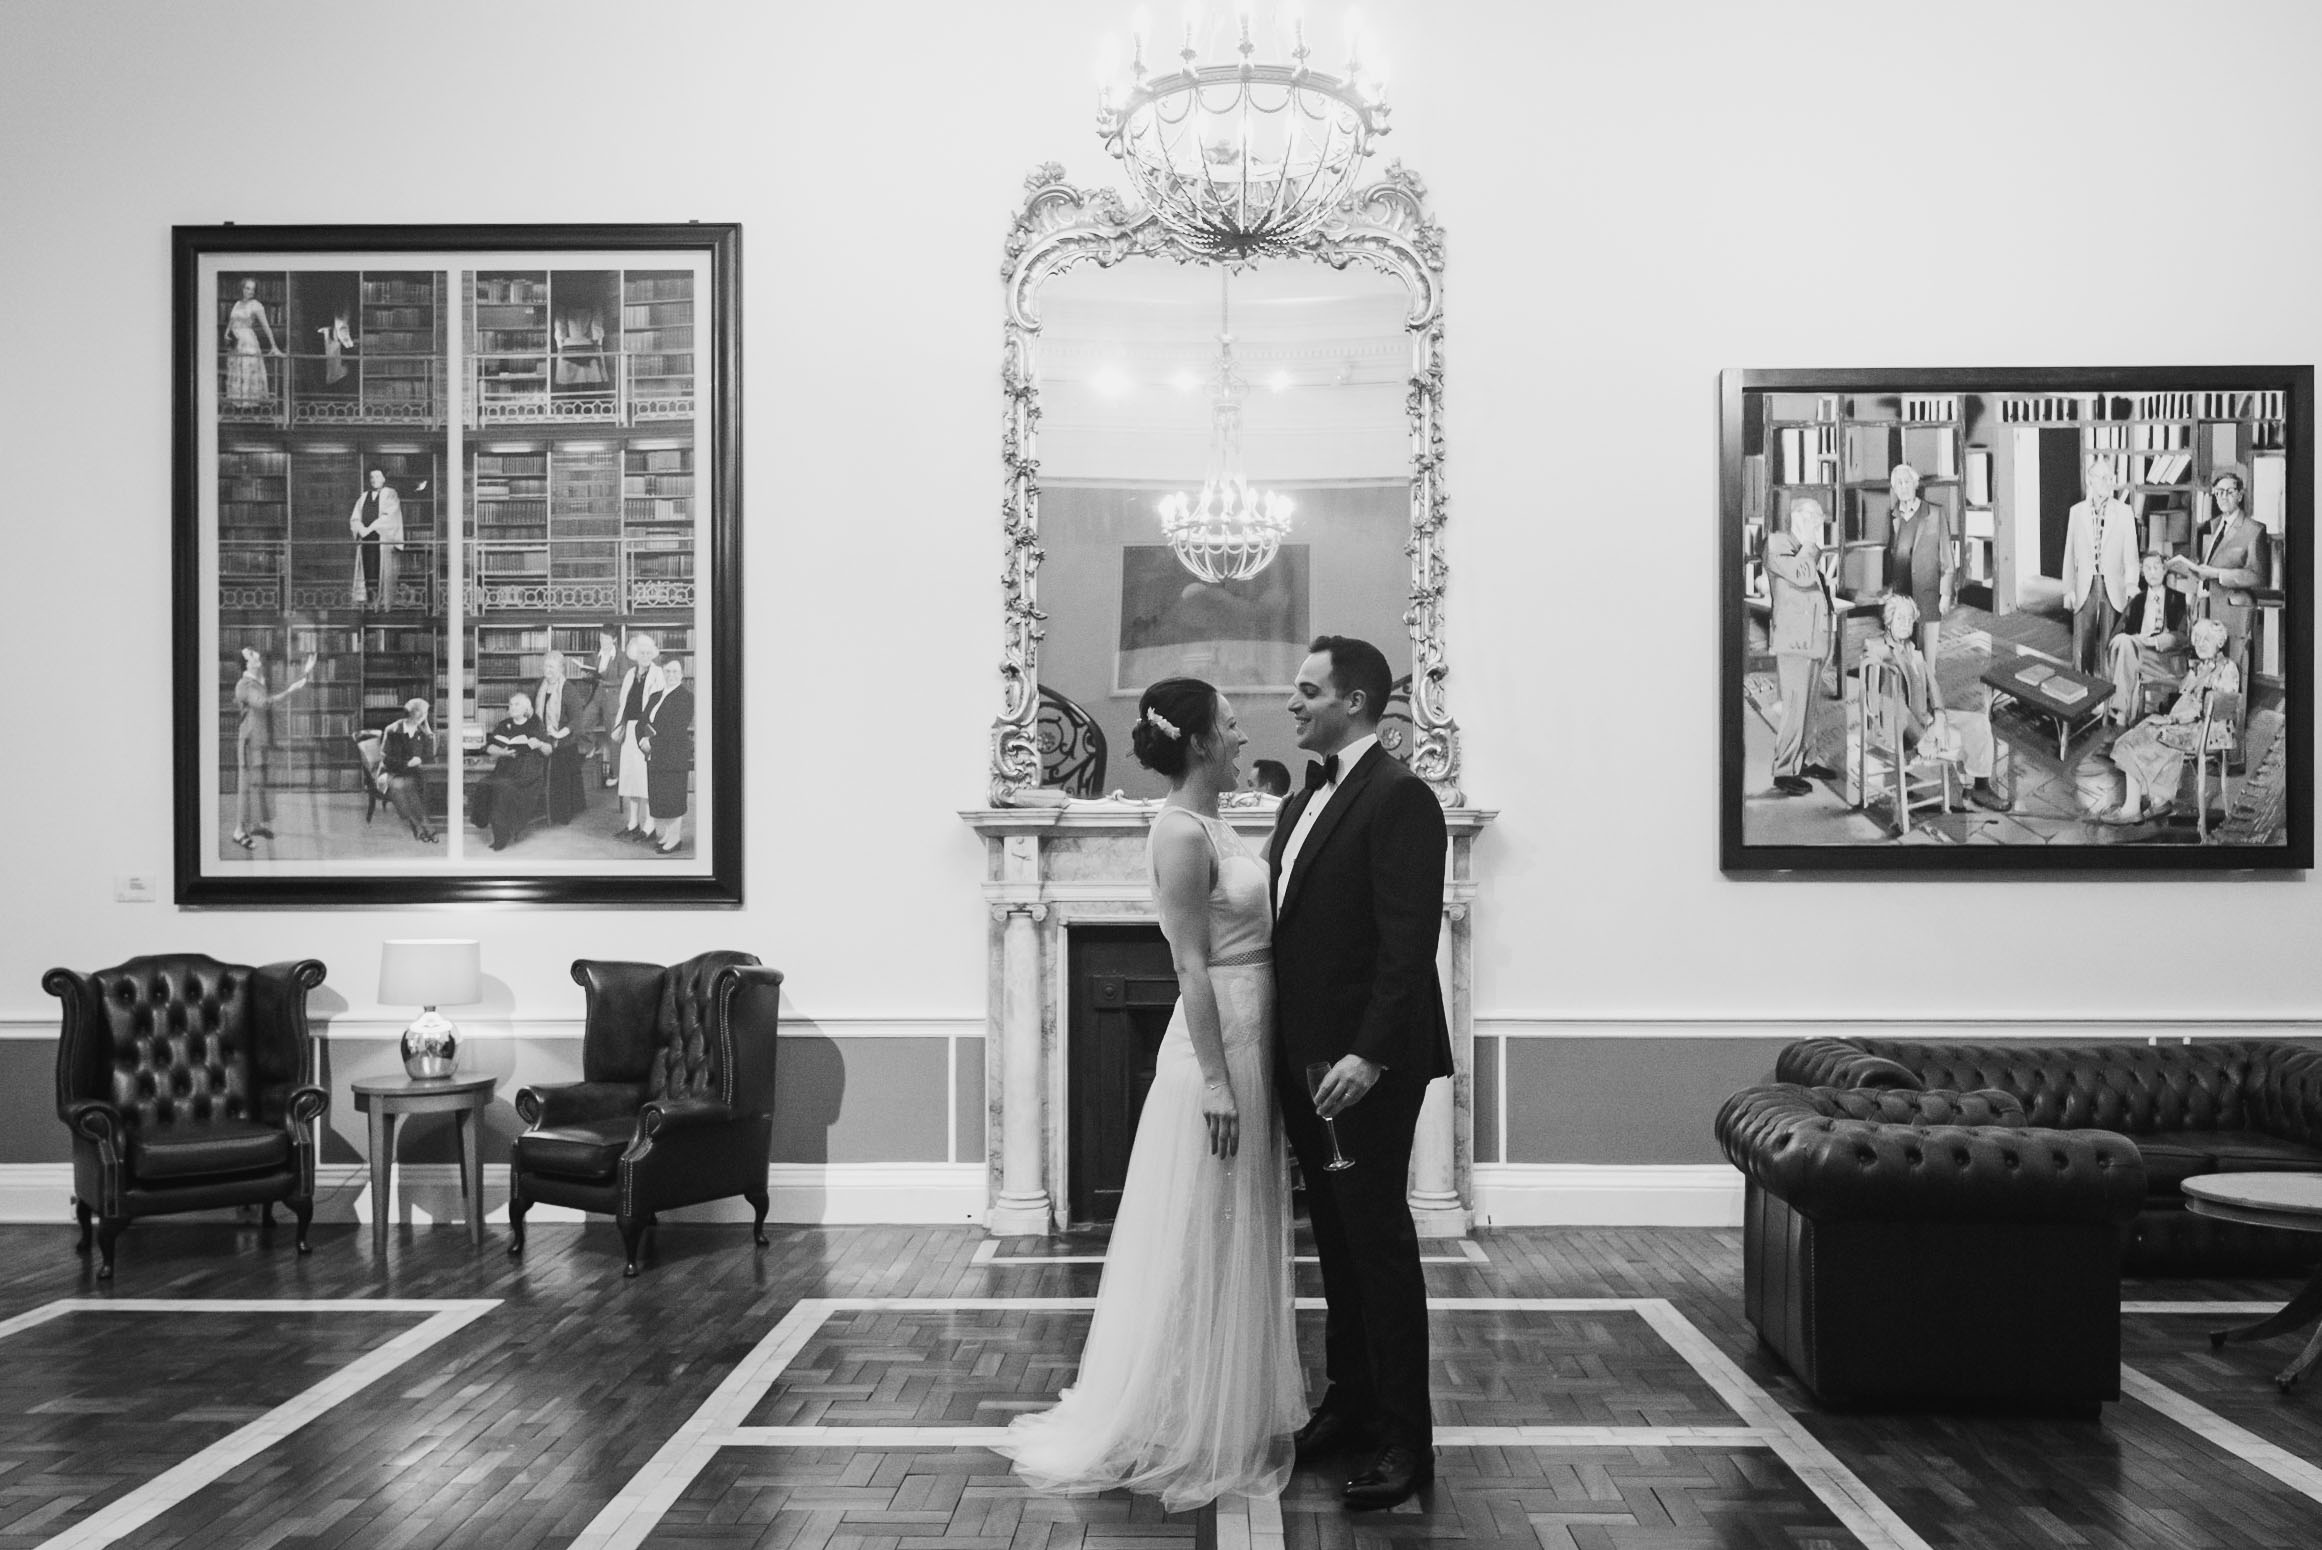 carine bea photography, couple portraita couple portraits wedding Carlton House Terrace London